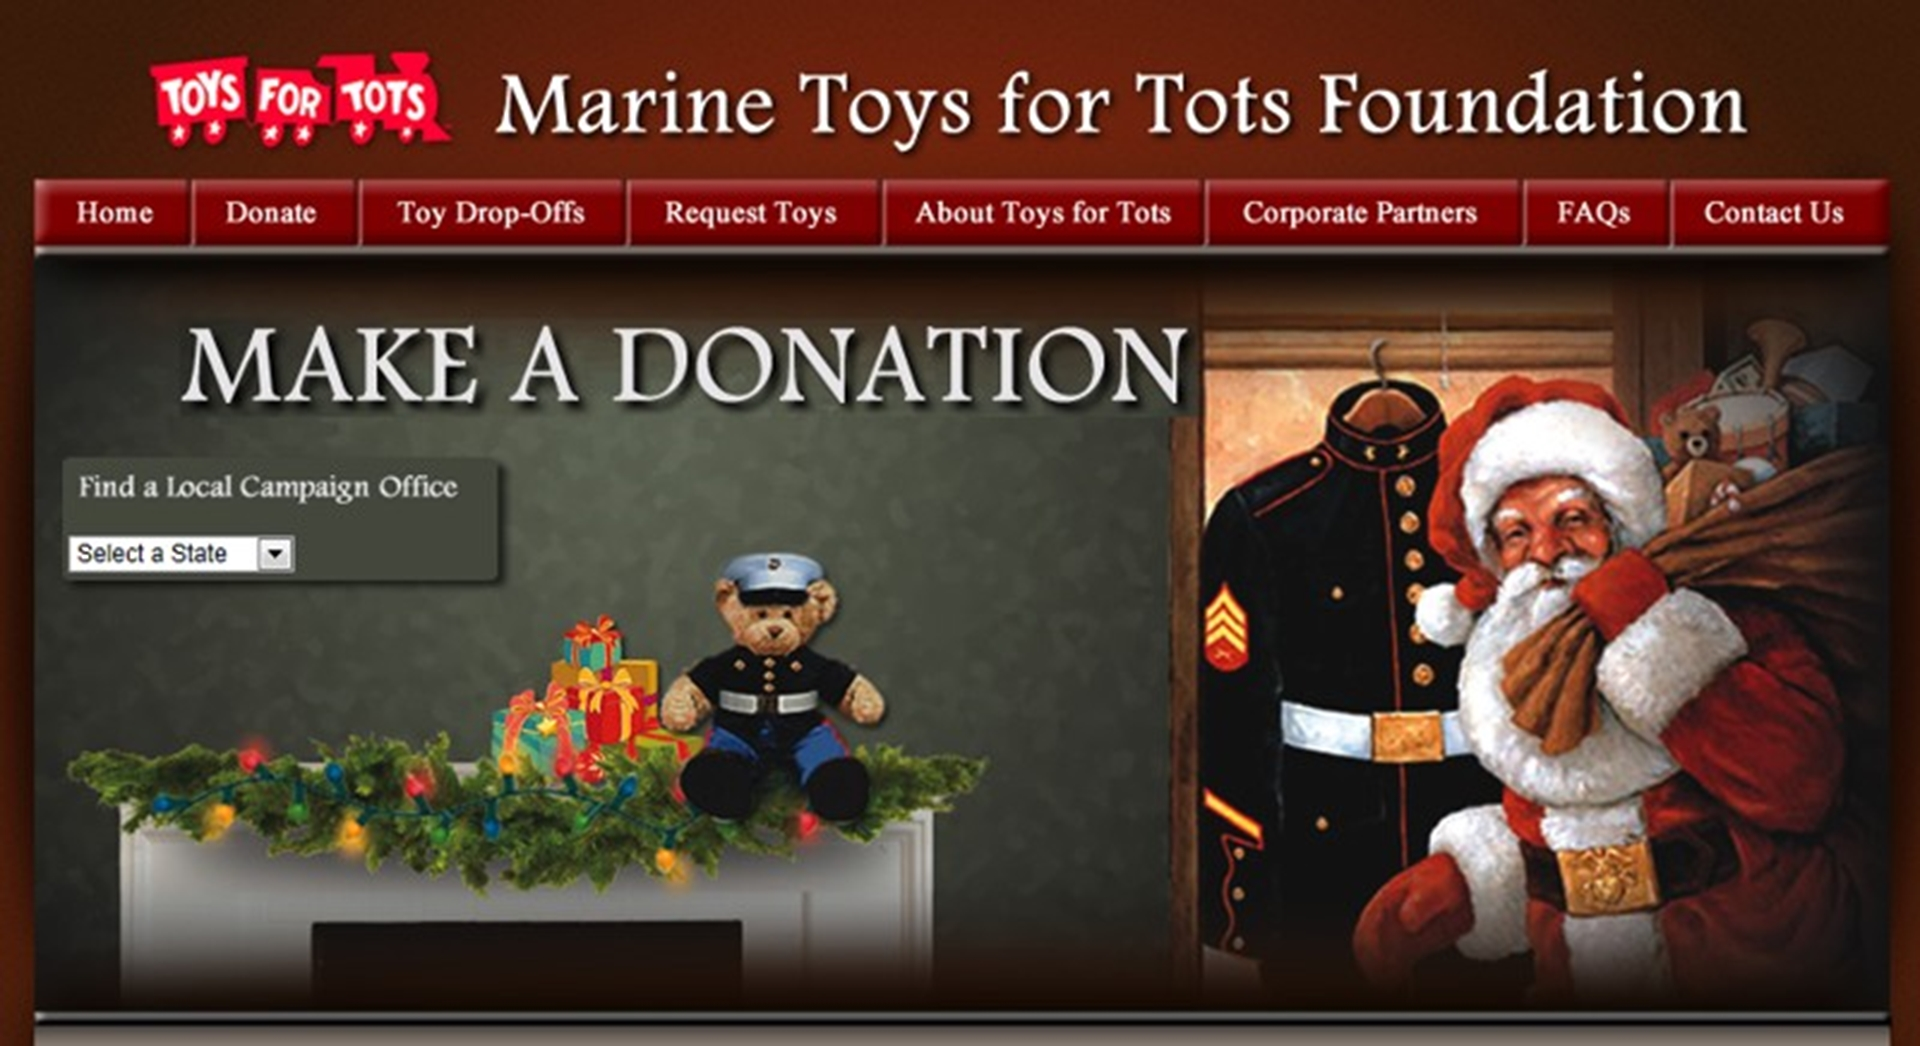 Toys For Tots Foundation Address : Chrysler mid atlantic business center and its dealers